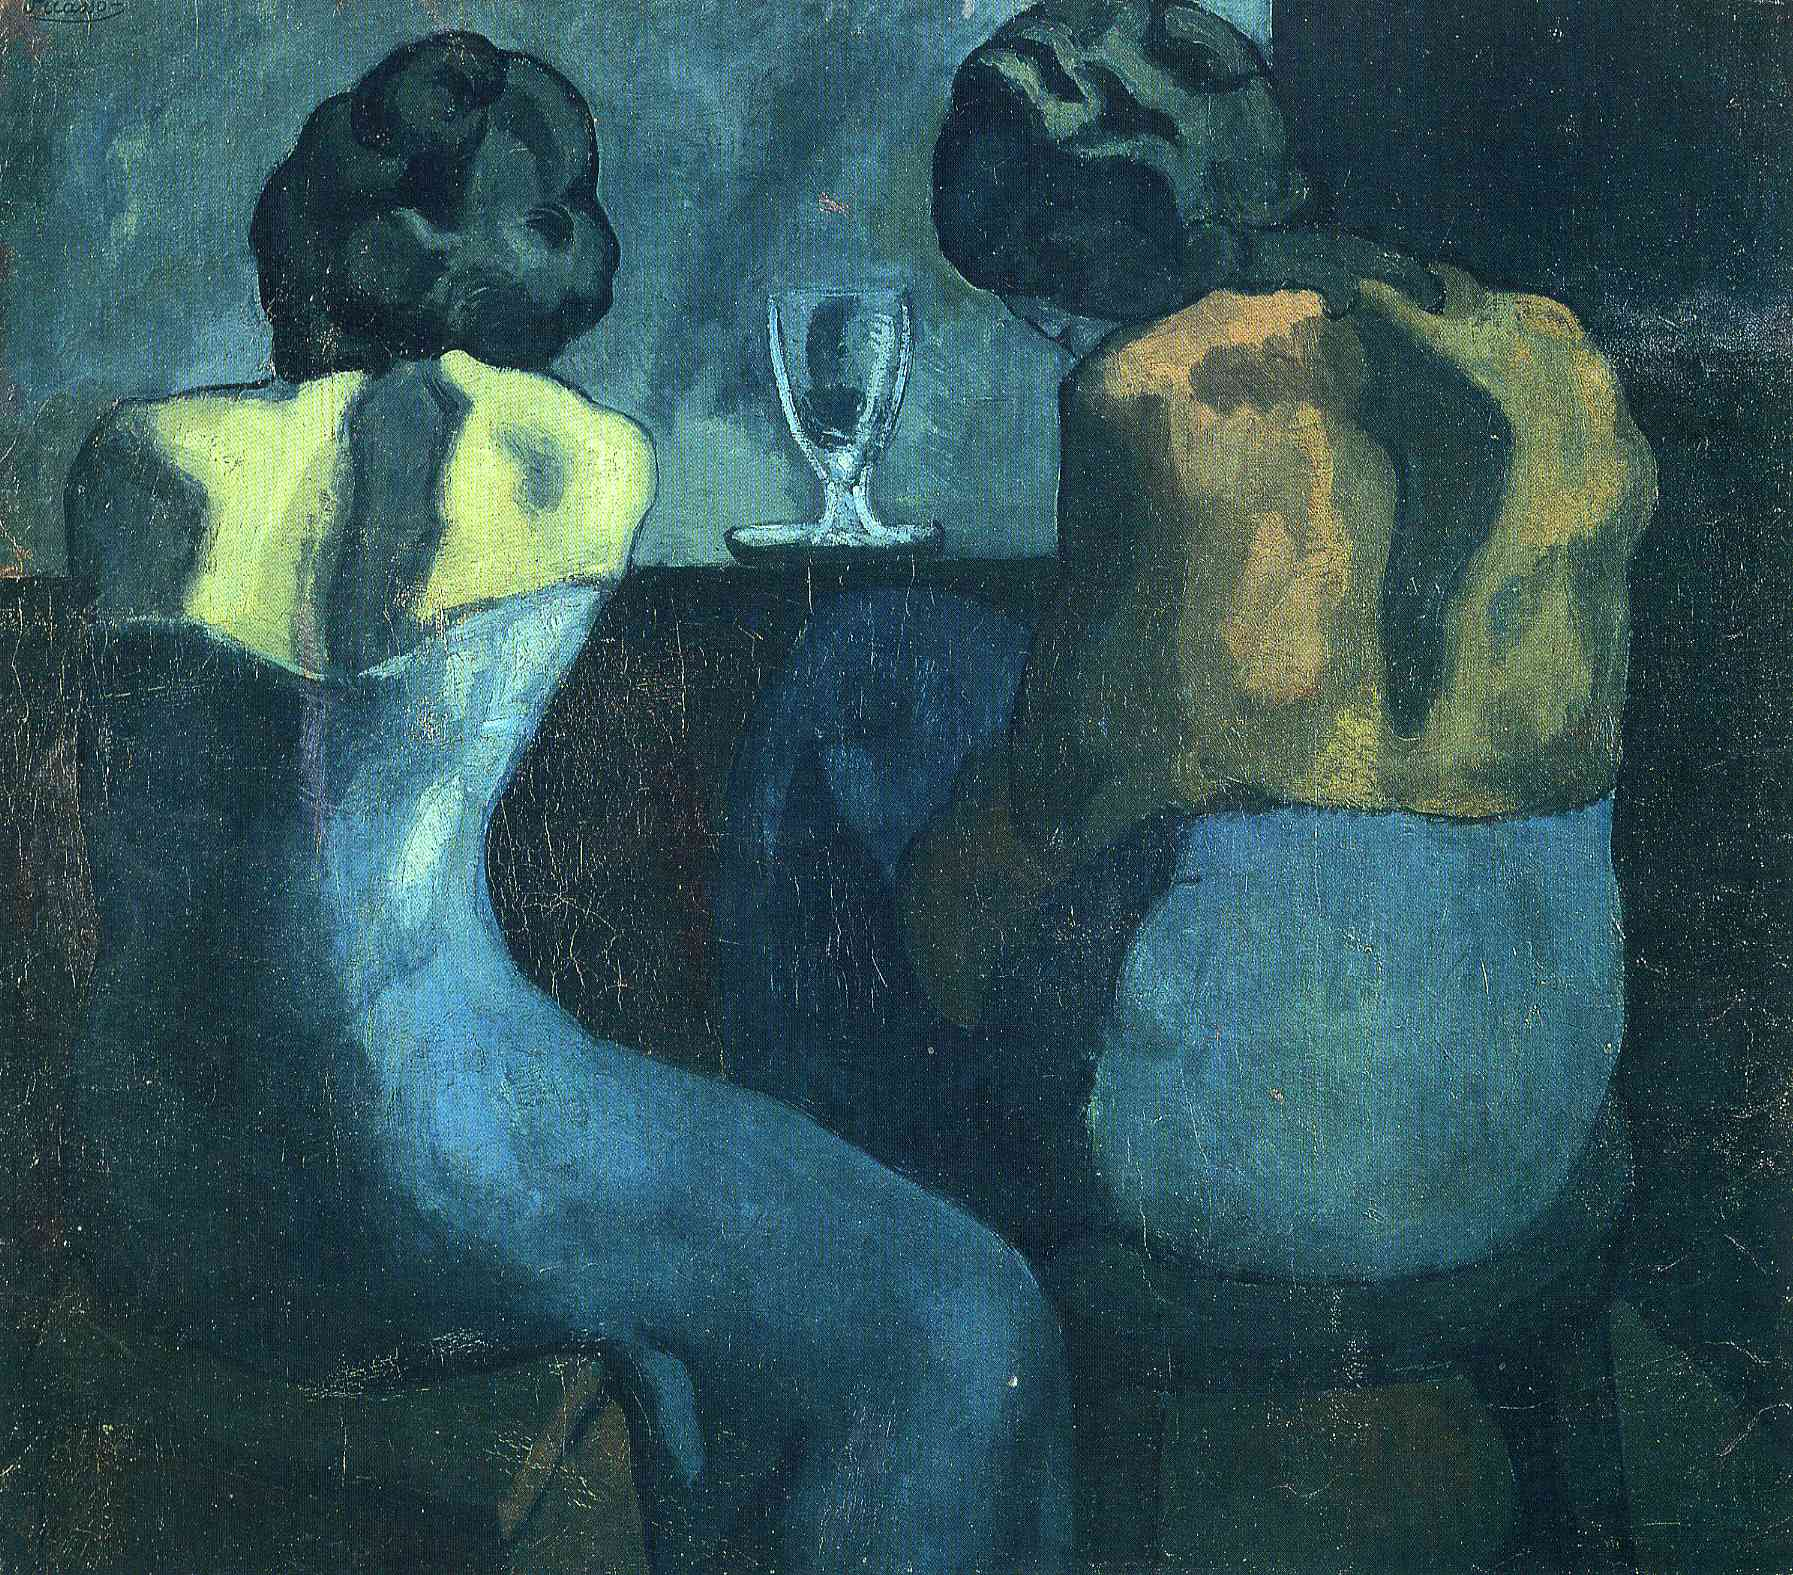 picasso-1902-two-women-sitting-at-a-bar-royal-academy-of-arts-london